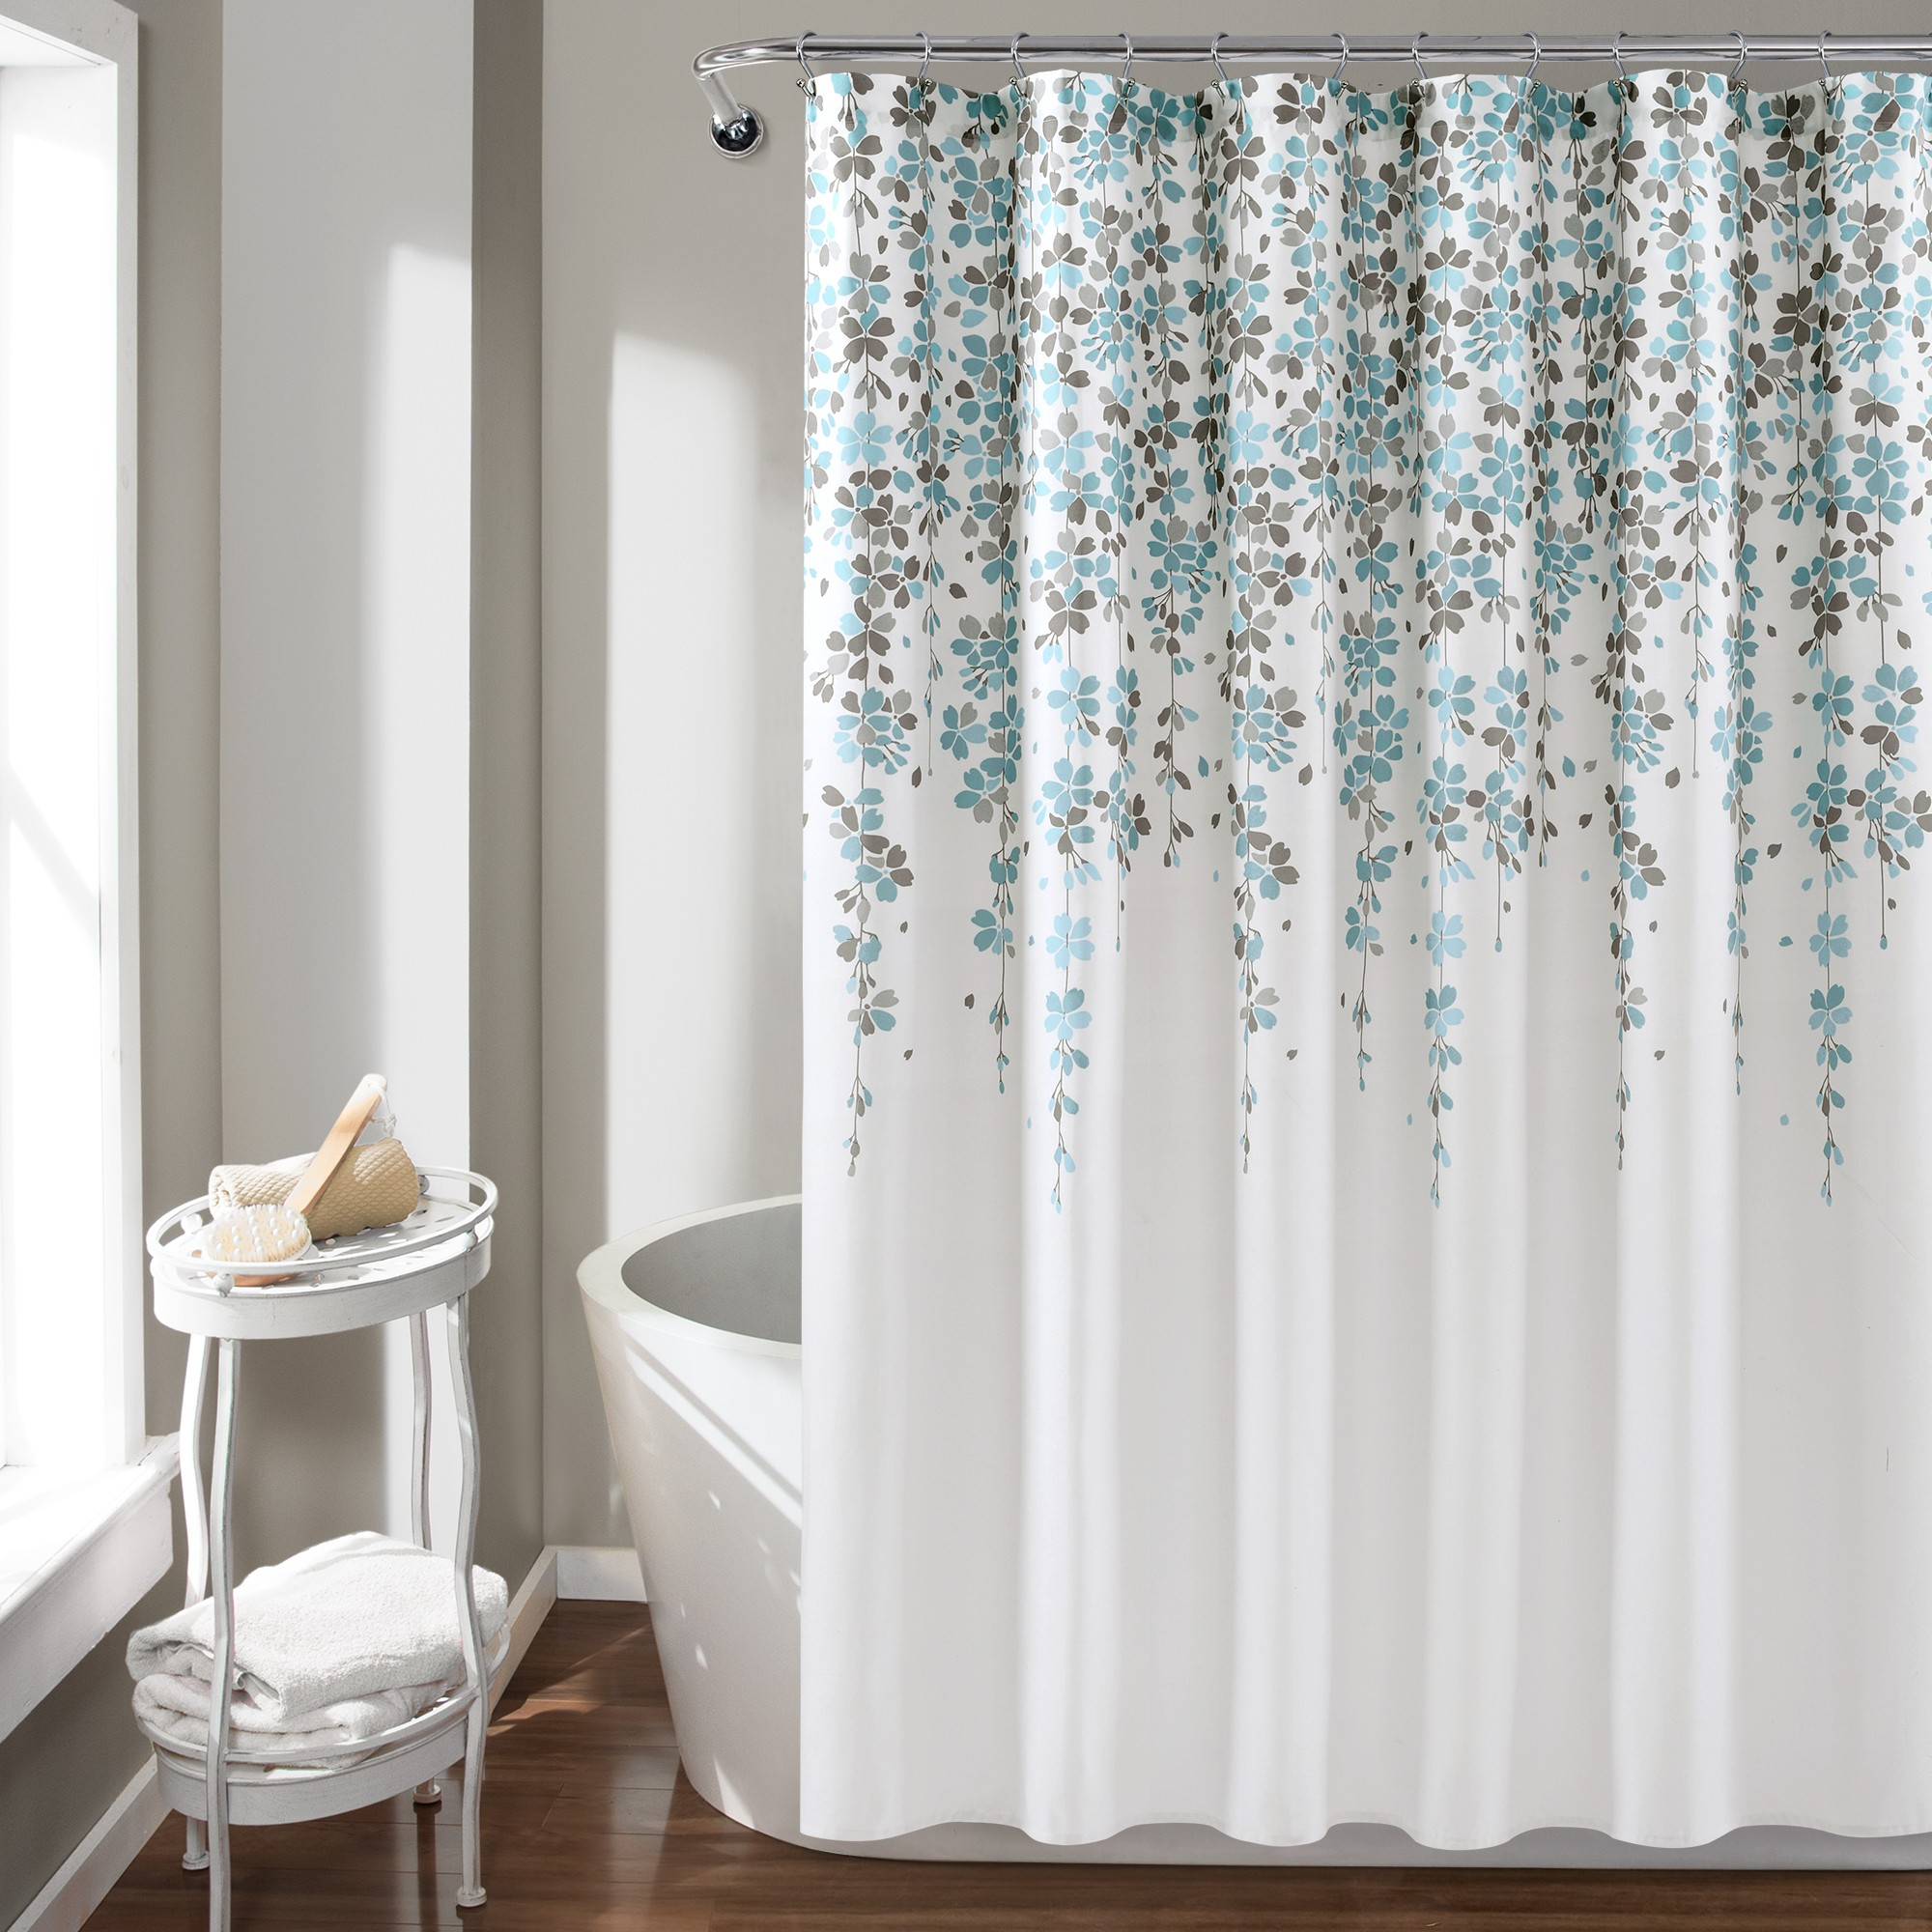 10 Best Shower Curtains For 2021 Ideas On Foter